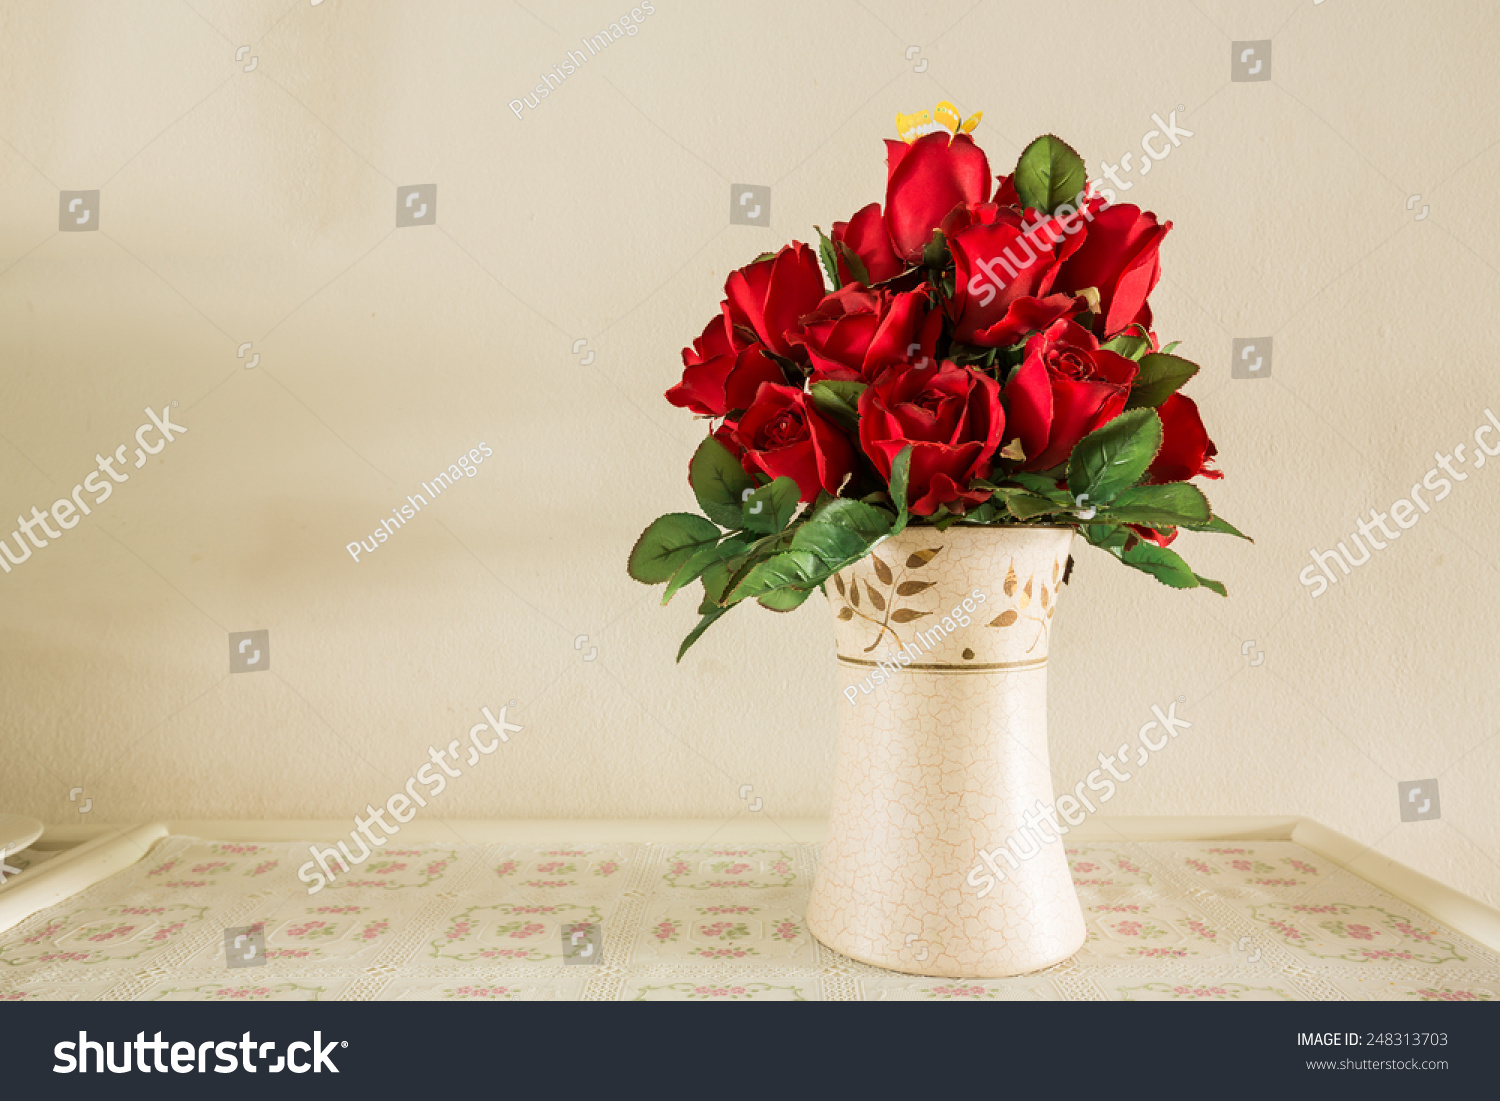 Bouquet red roses flower vase stock photo 248313703 shutterstock bouquet of red roses flower in vase reviewsmspy